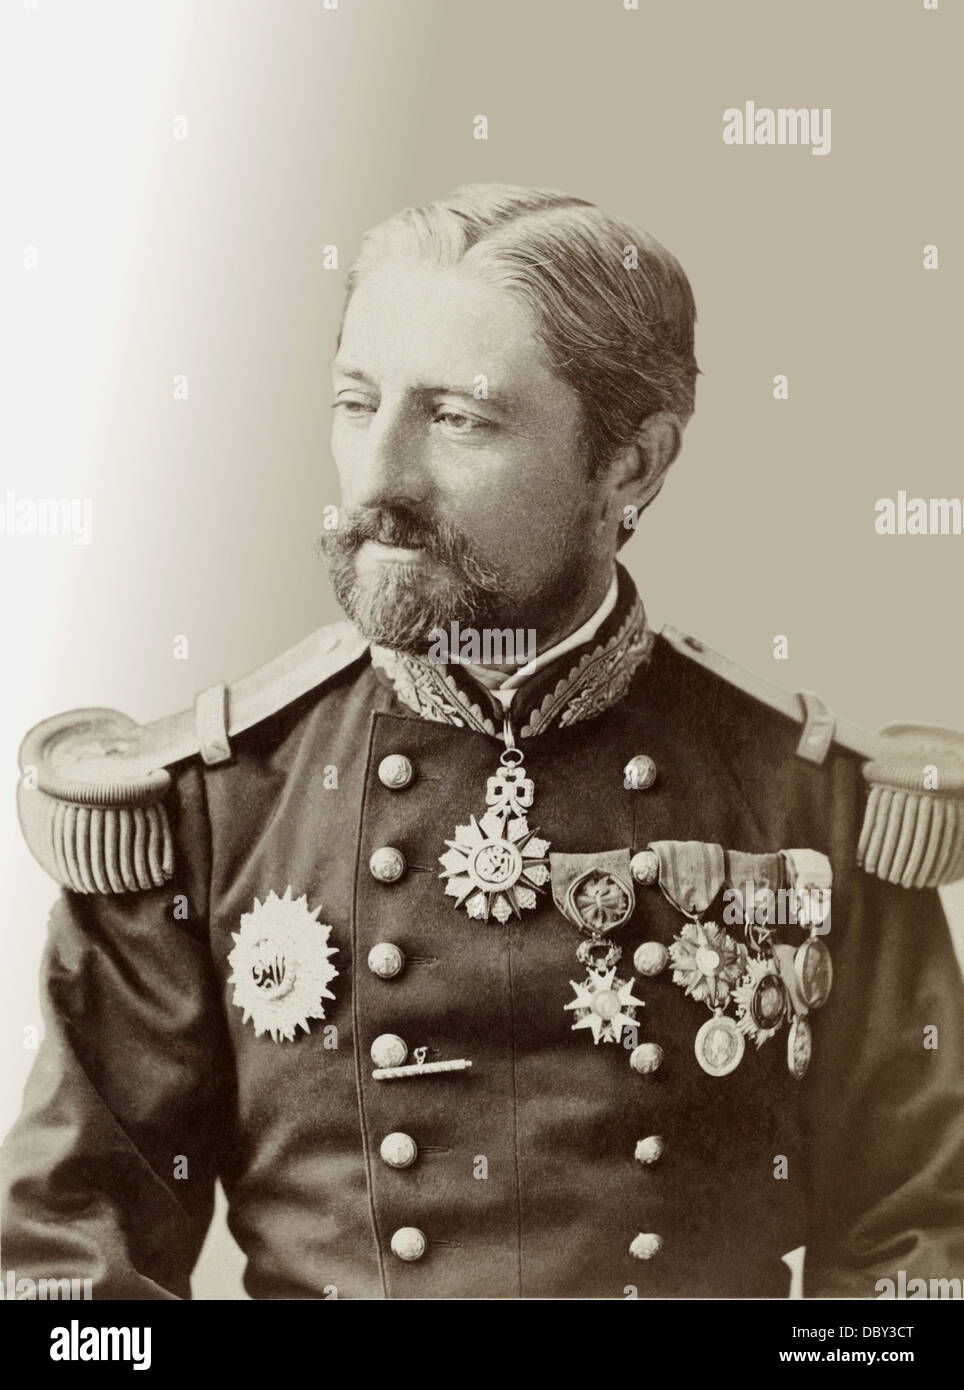 Armand Jules Marie de Cavelier de Cuverville (1834 - 1912), French admiral and politician. Stock Photo